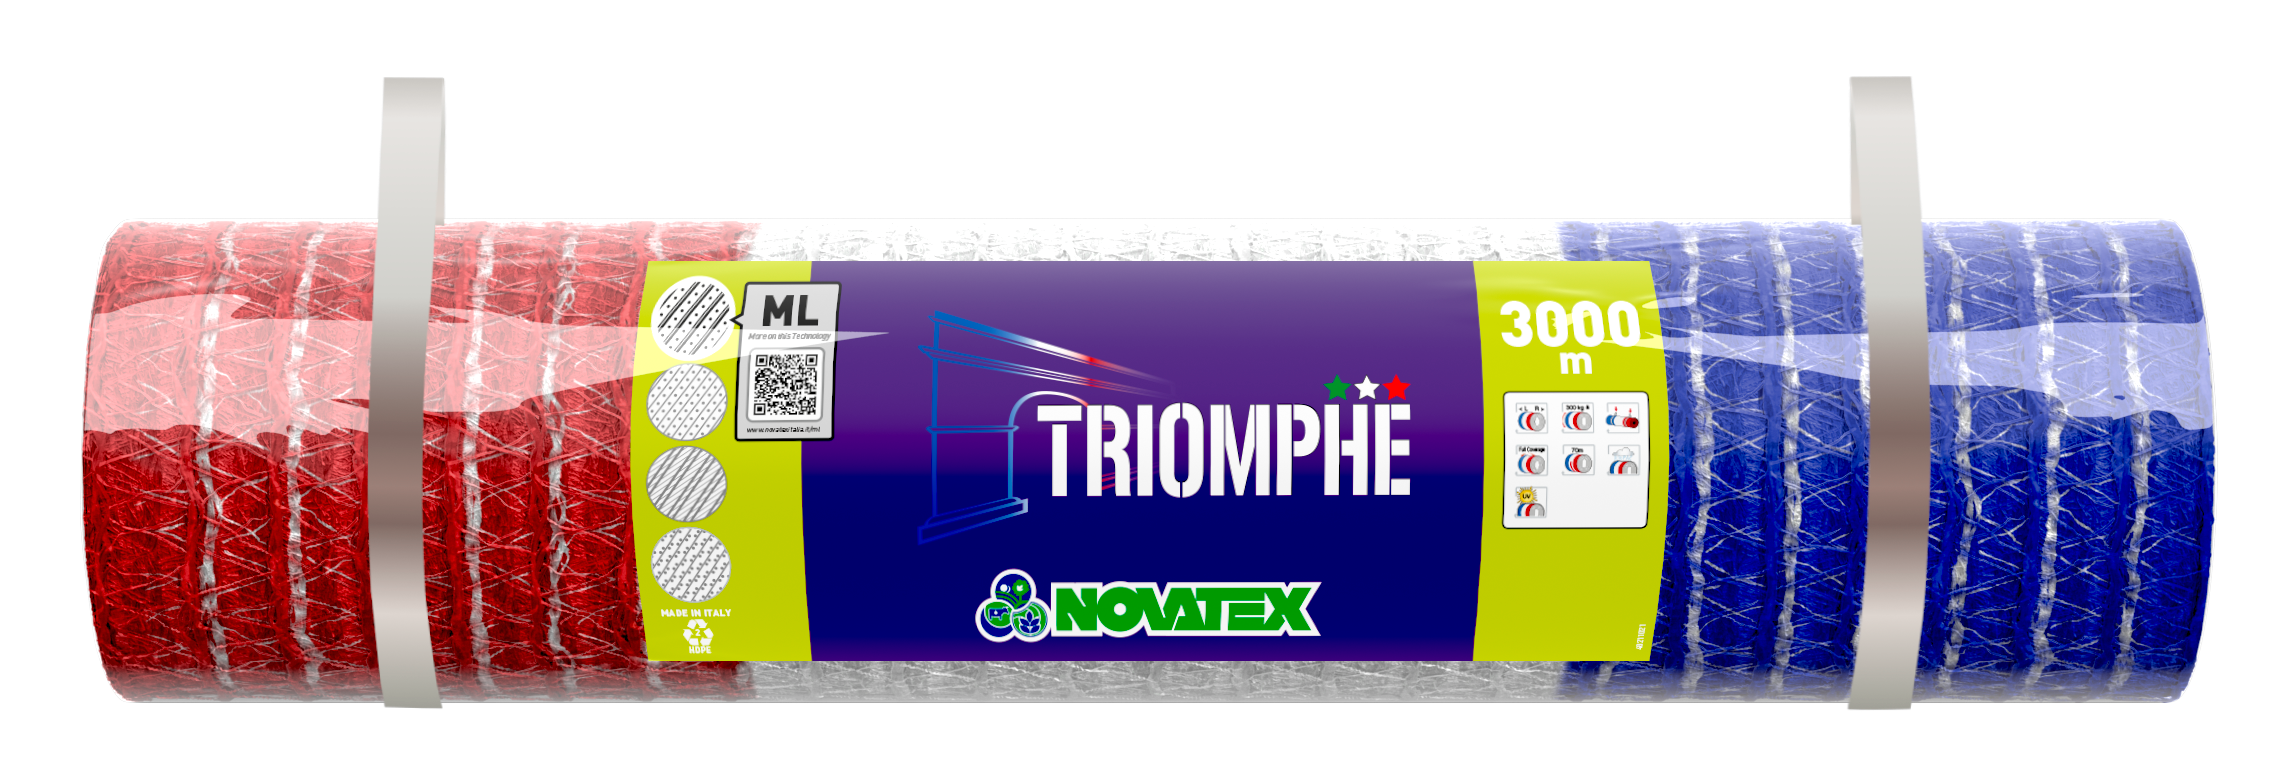 Agri Novatex, South Africa, Triomphe, Bale Wrap, Packaging